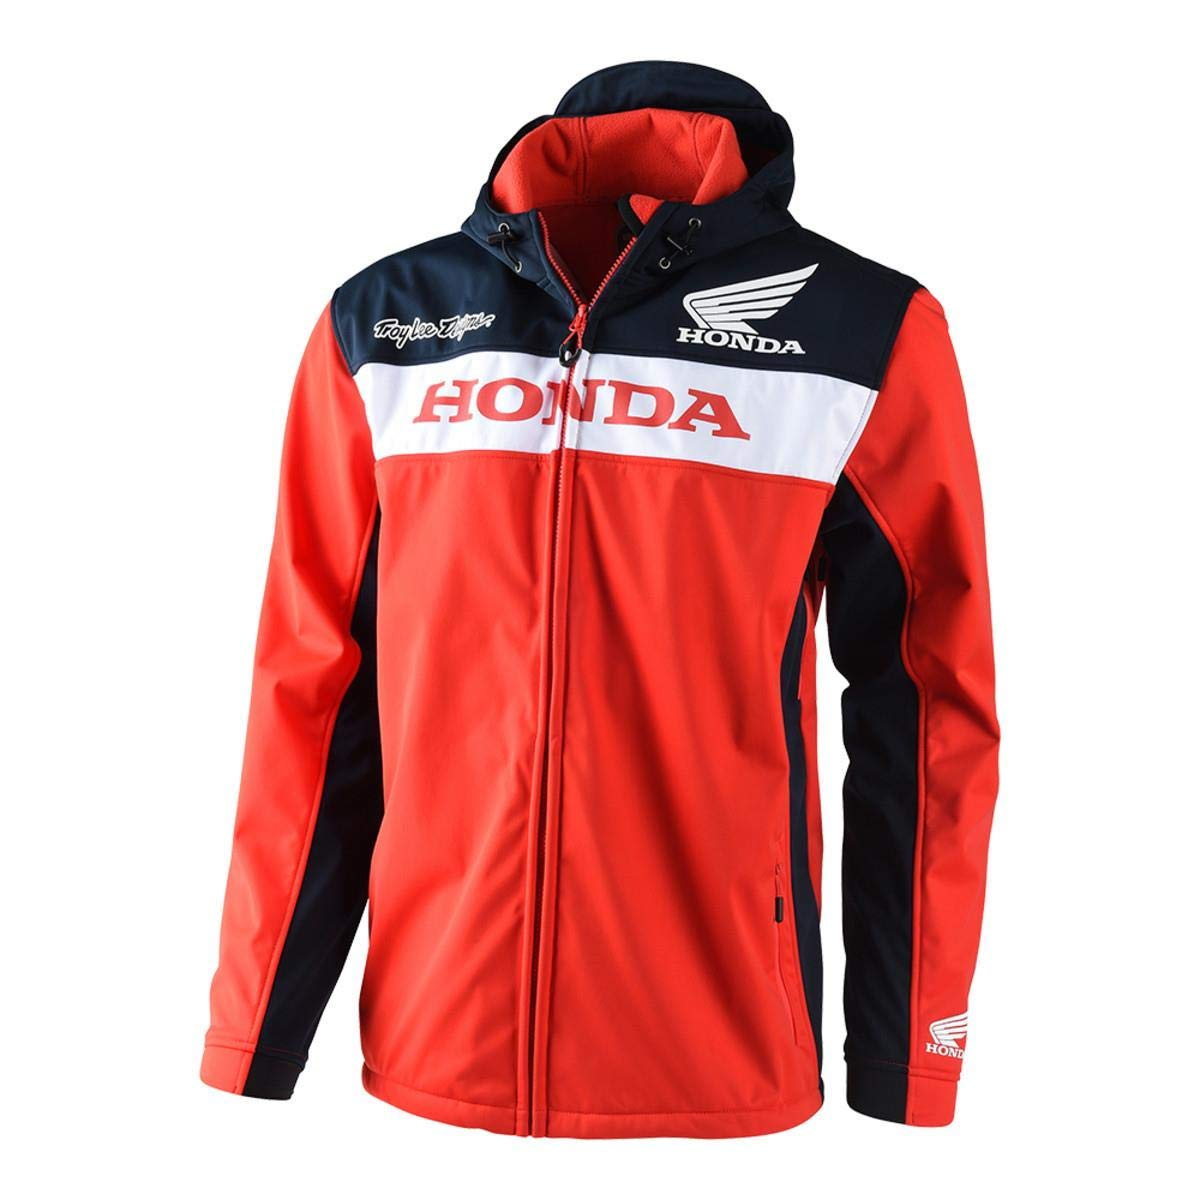 Troy Lee Designs Men's 2018 Honda Wing Tech Jacket 726515432-A